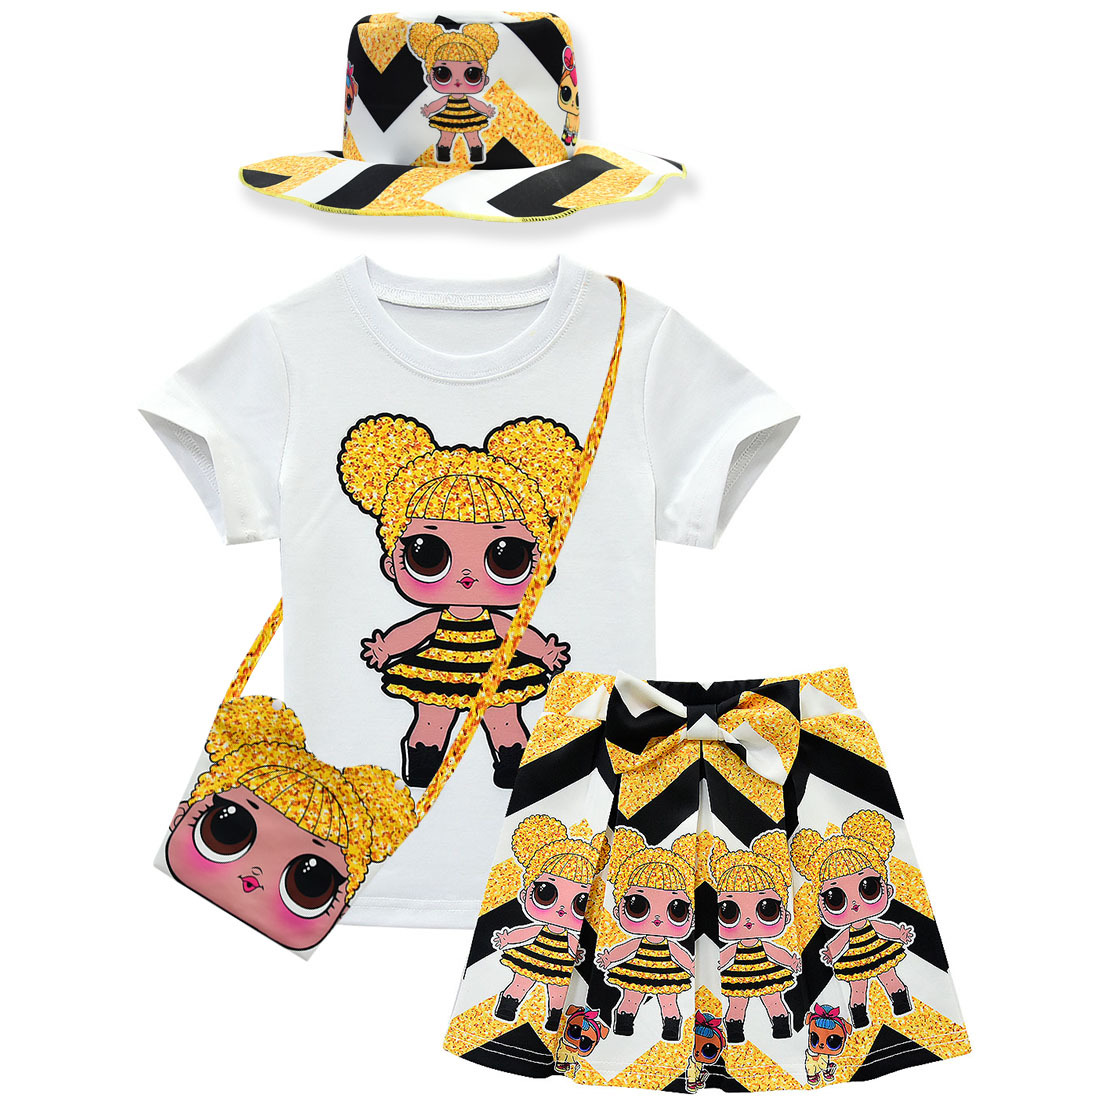 Toddler Kids Girls Lol Clothes Set Summer Cartoon Short Sleeve T-shirt Tops+bag+Skirt+hat Outfit Childred Suit For Girl New 4PCS